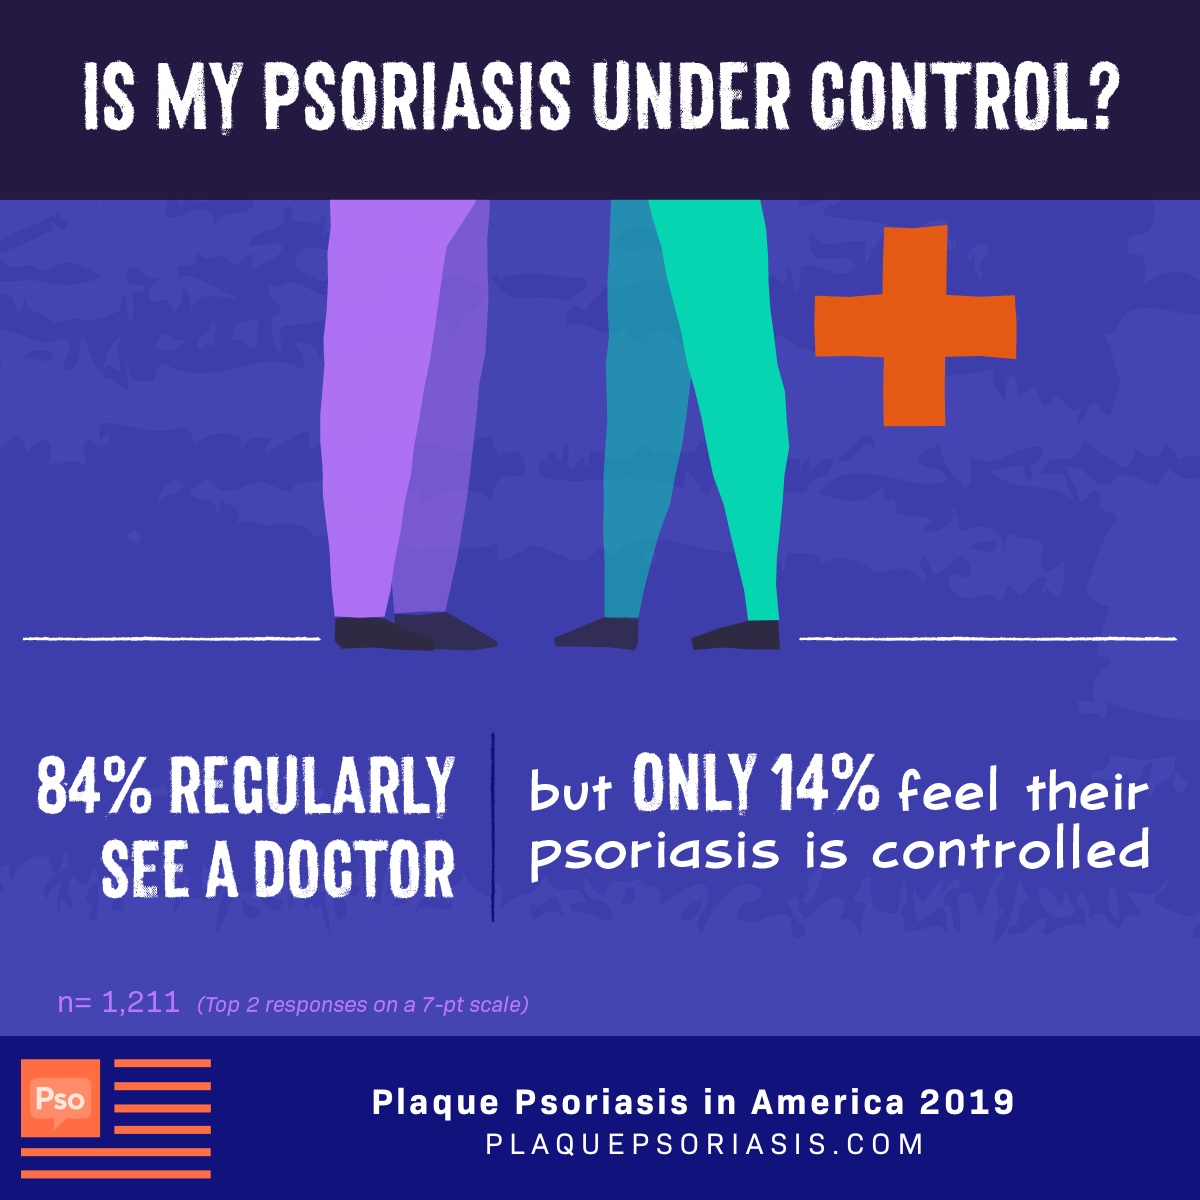 While 84% of patients regularly see a doctor, only 14% feel their psoriasis is under control.